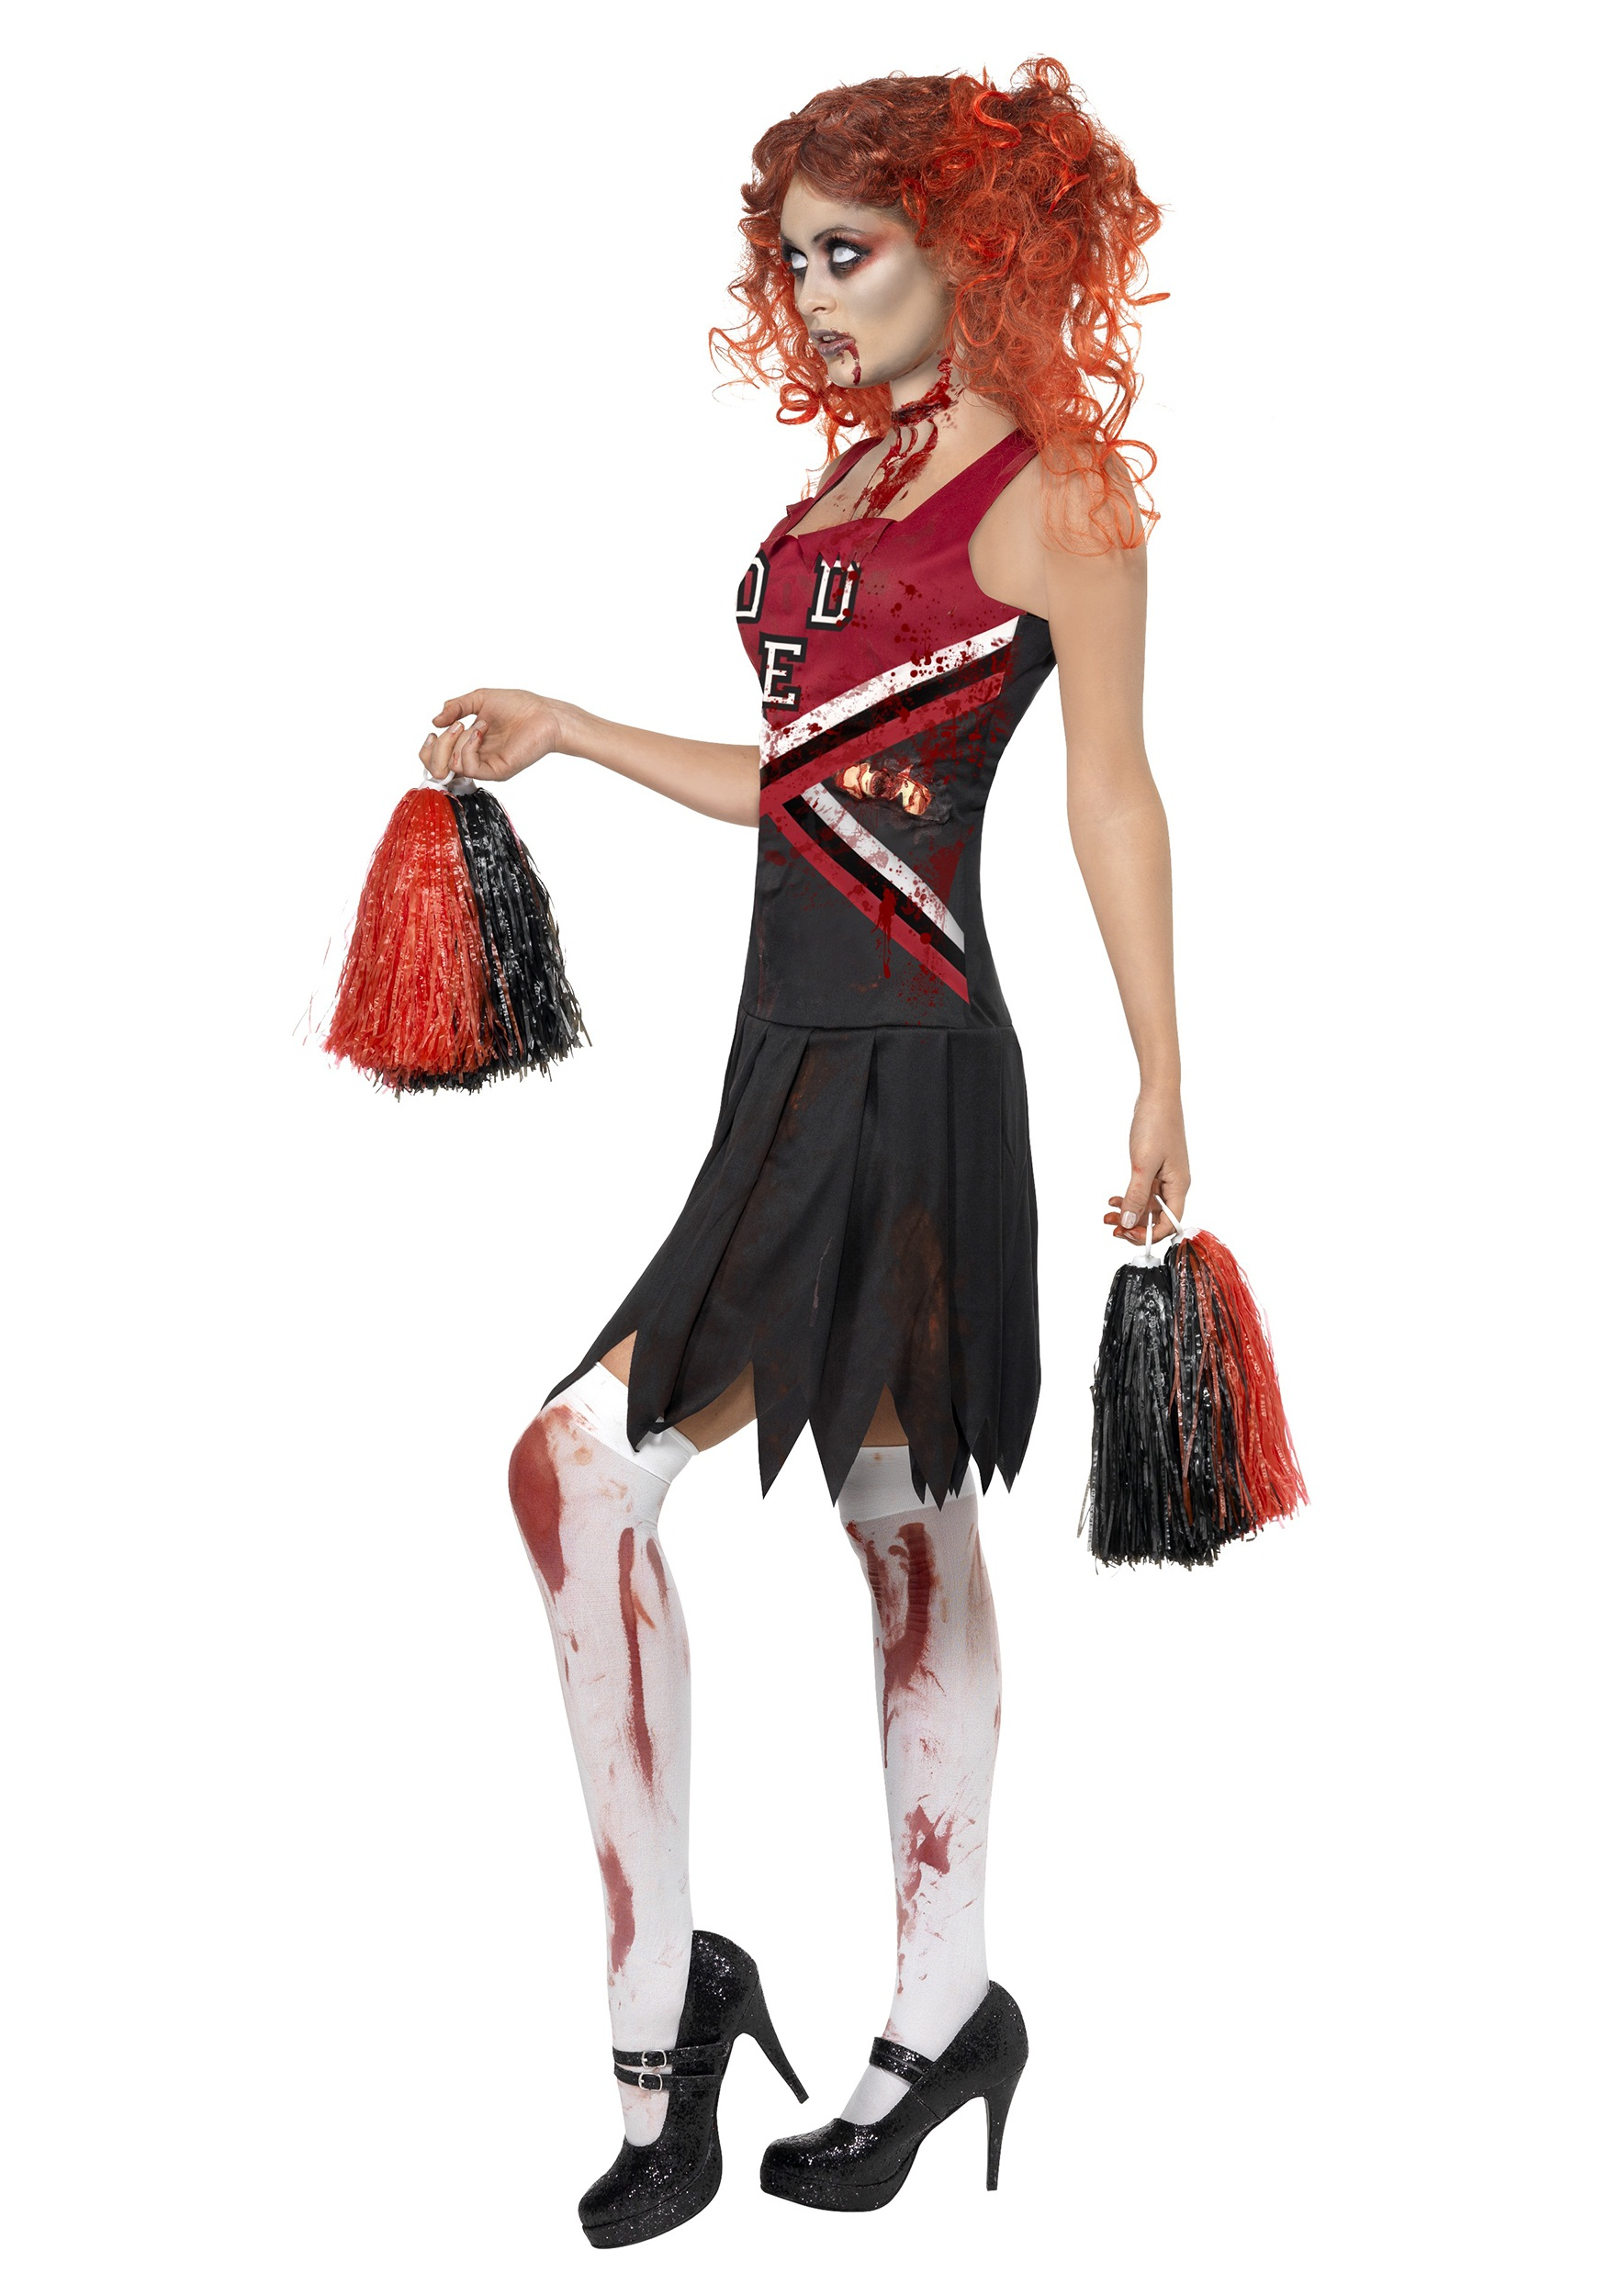 Zombie Cheerleader Costume Zombie Cheerleader Costume Alt1 Zombie Cheerleader Costume Alt2 ...  sc 1 st  Halloween Costumes & Zombie Cheerleader Costume